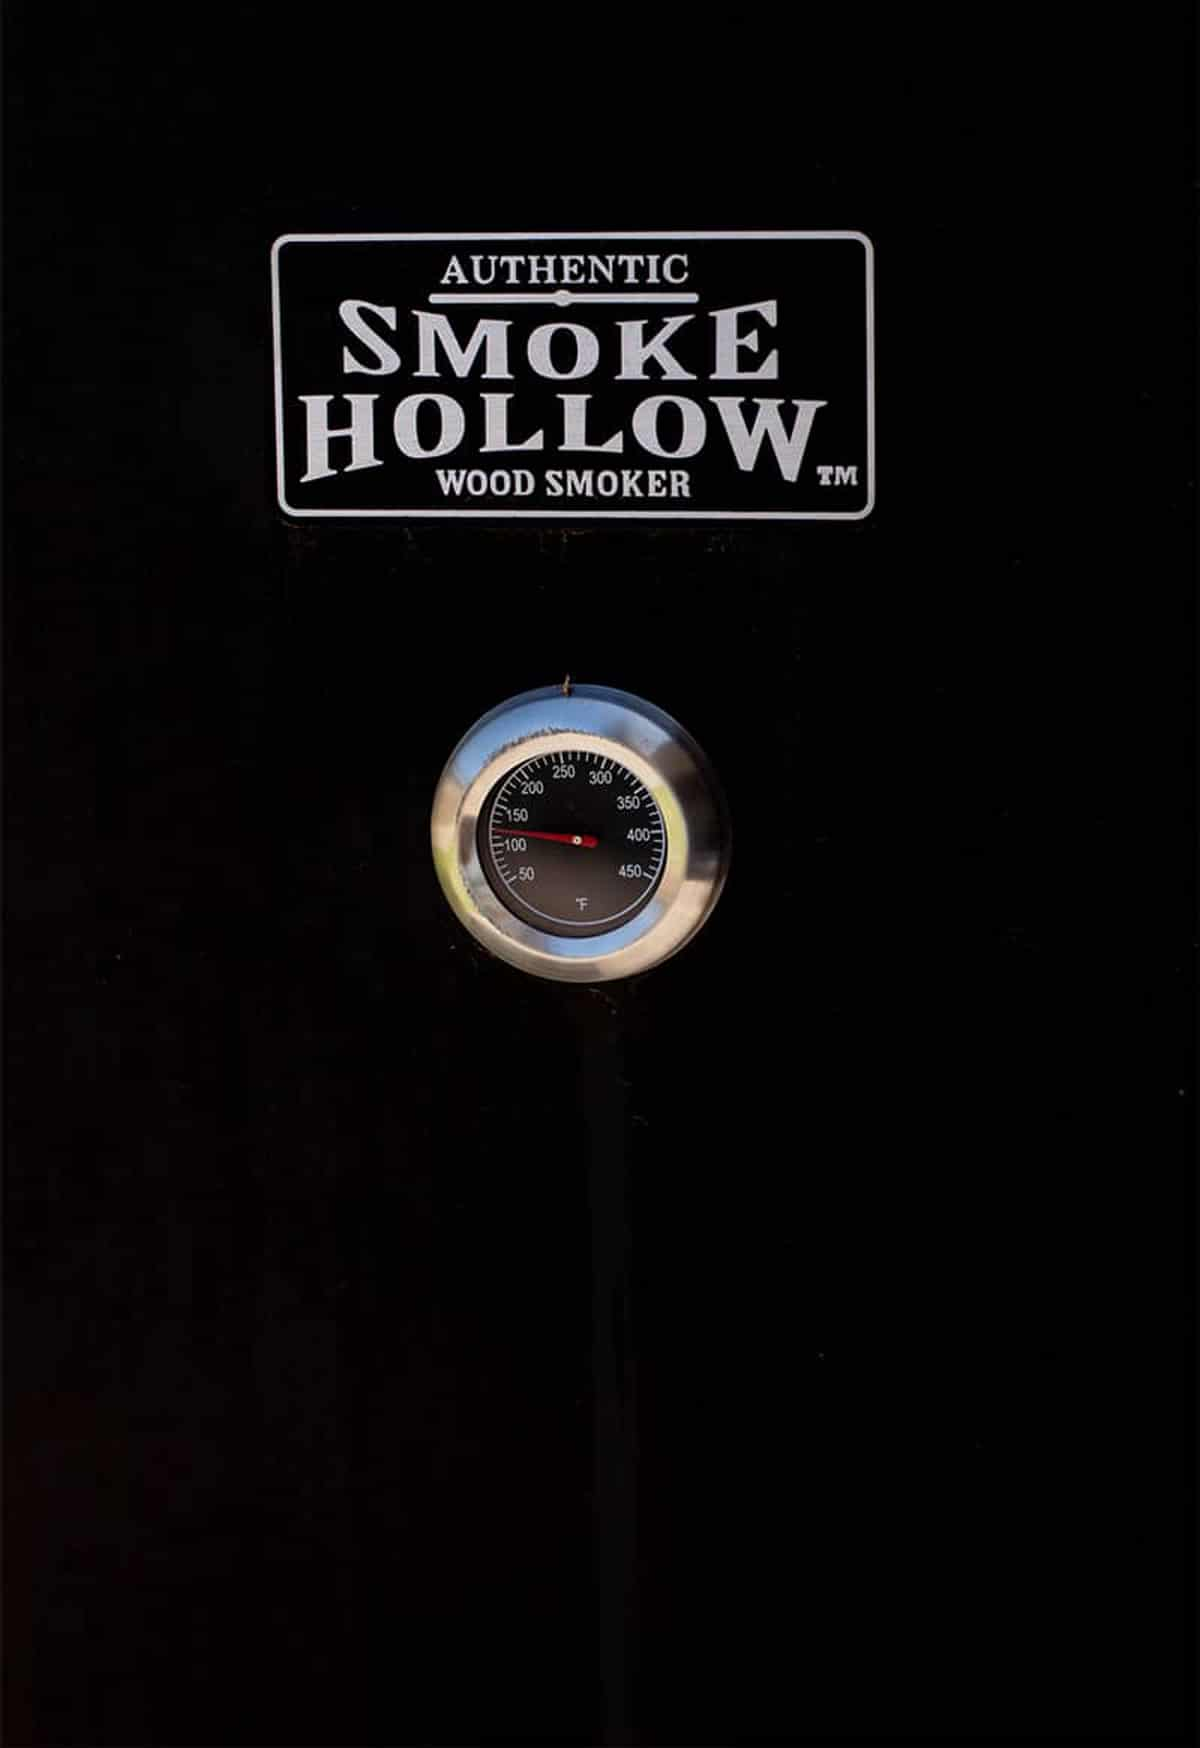 Picture of the door of a black Smoked Hollow Wood Smoker.